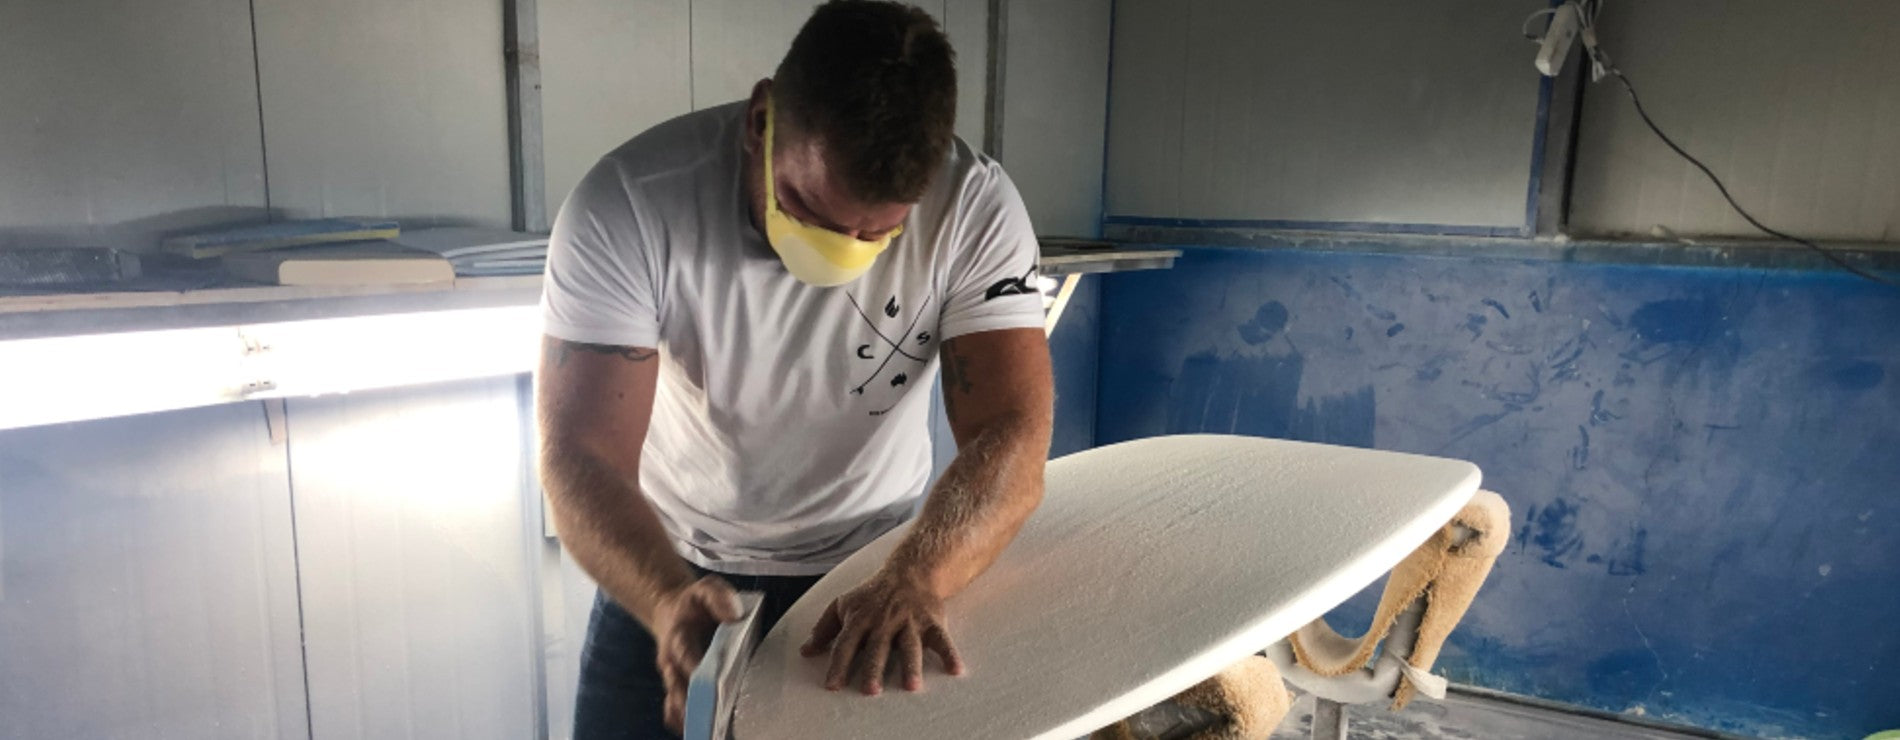 Ryan Briggs working on surfboard